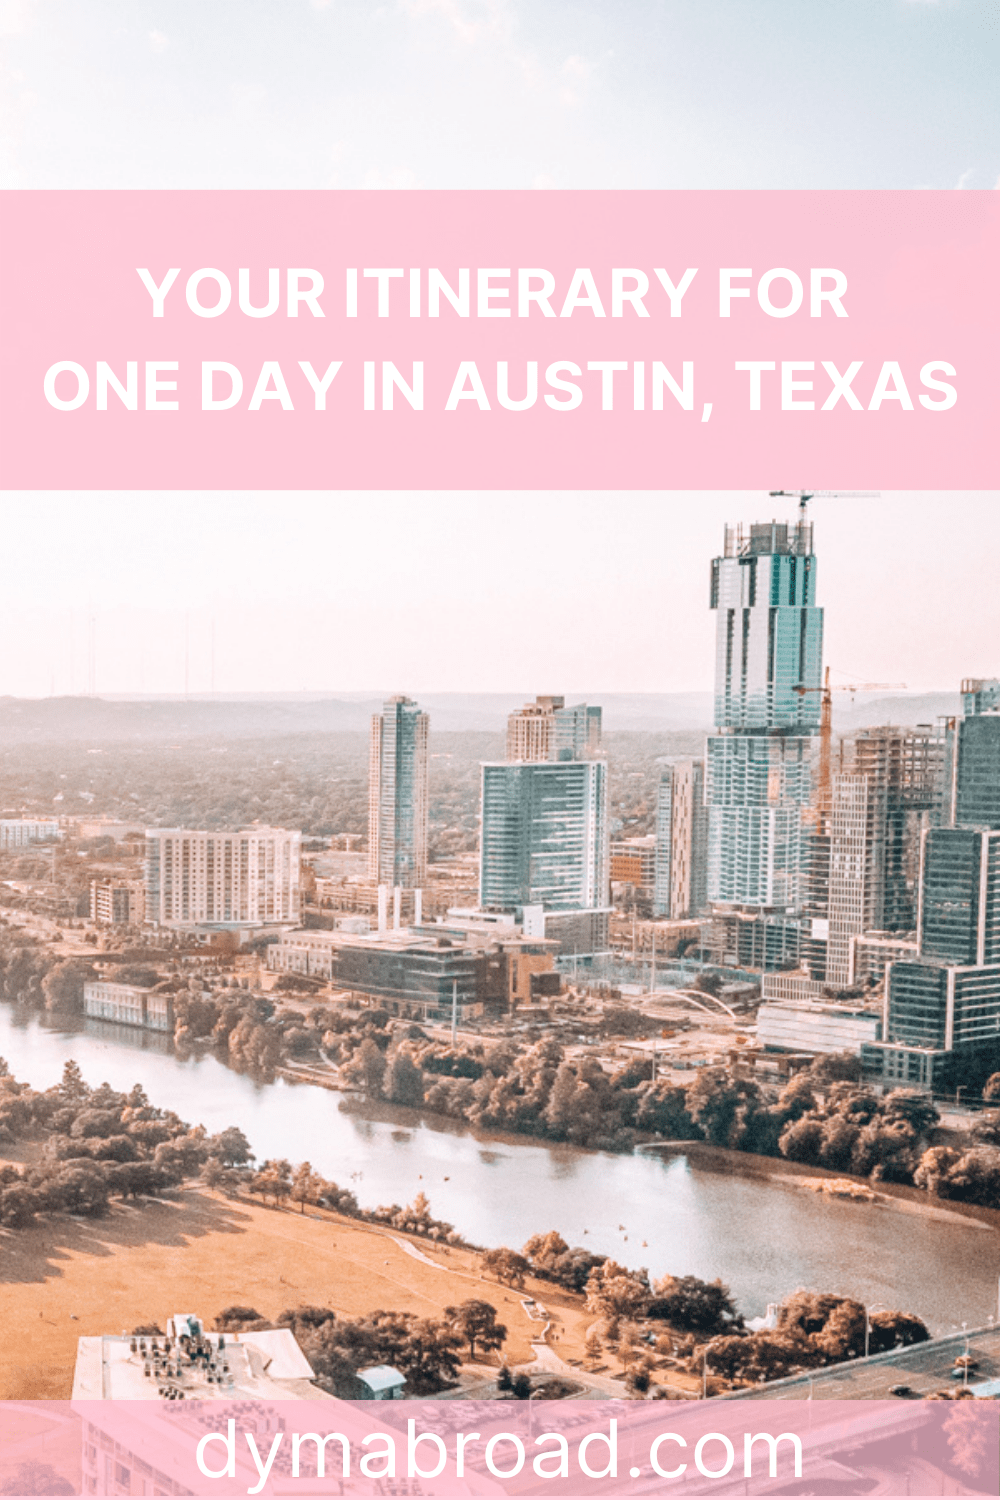 One day in Austin Itinerary Pinterest image